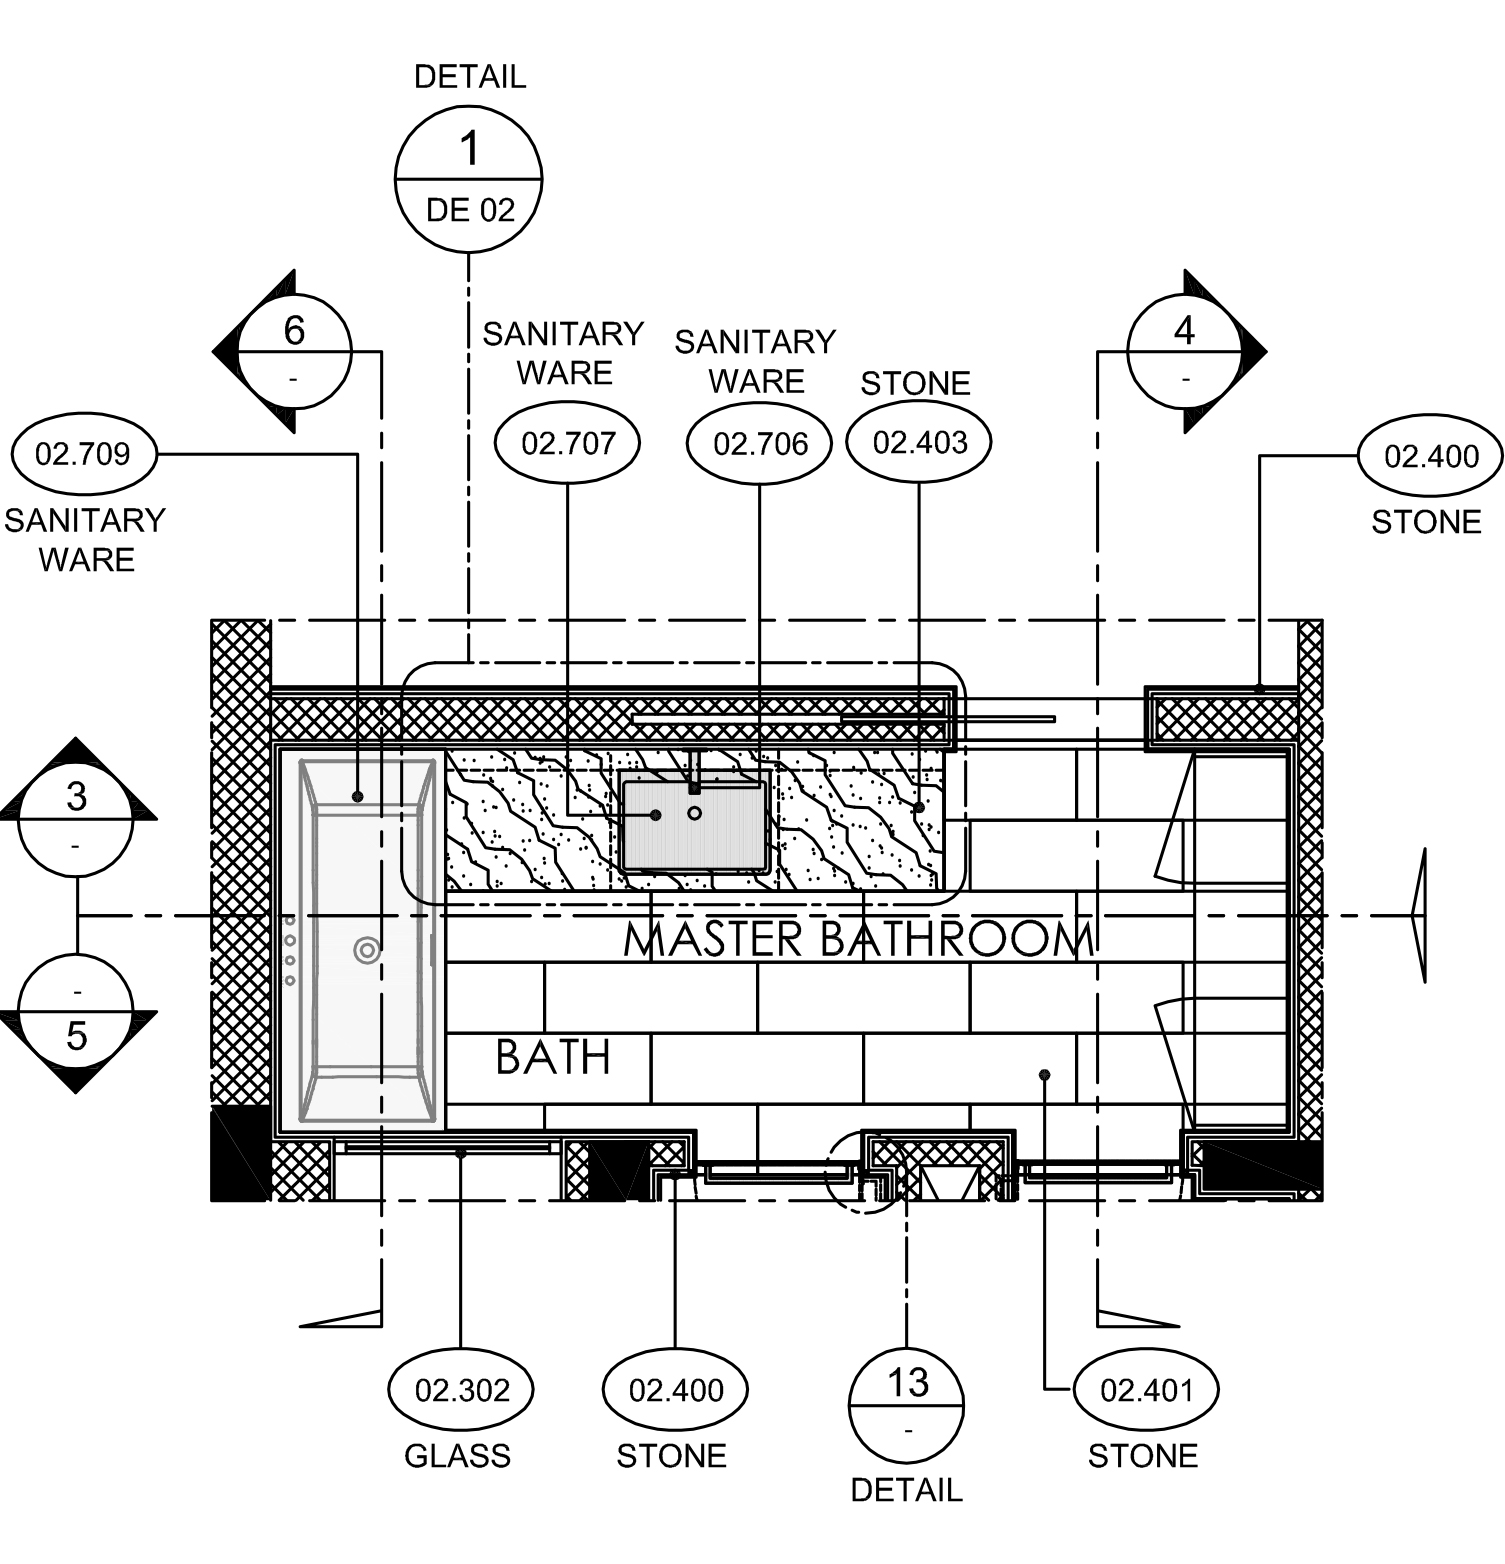 Shop Drawings Services Precast Rebar Tilt Up Panel Staircase Hvac Drawing Samples Concrete Wall Panels